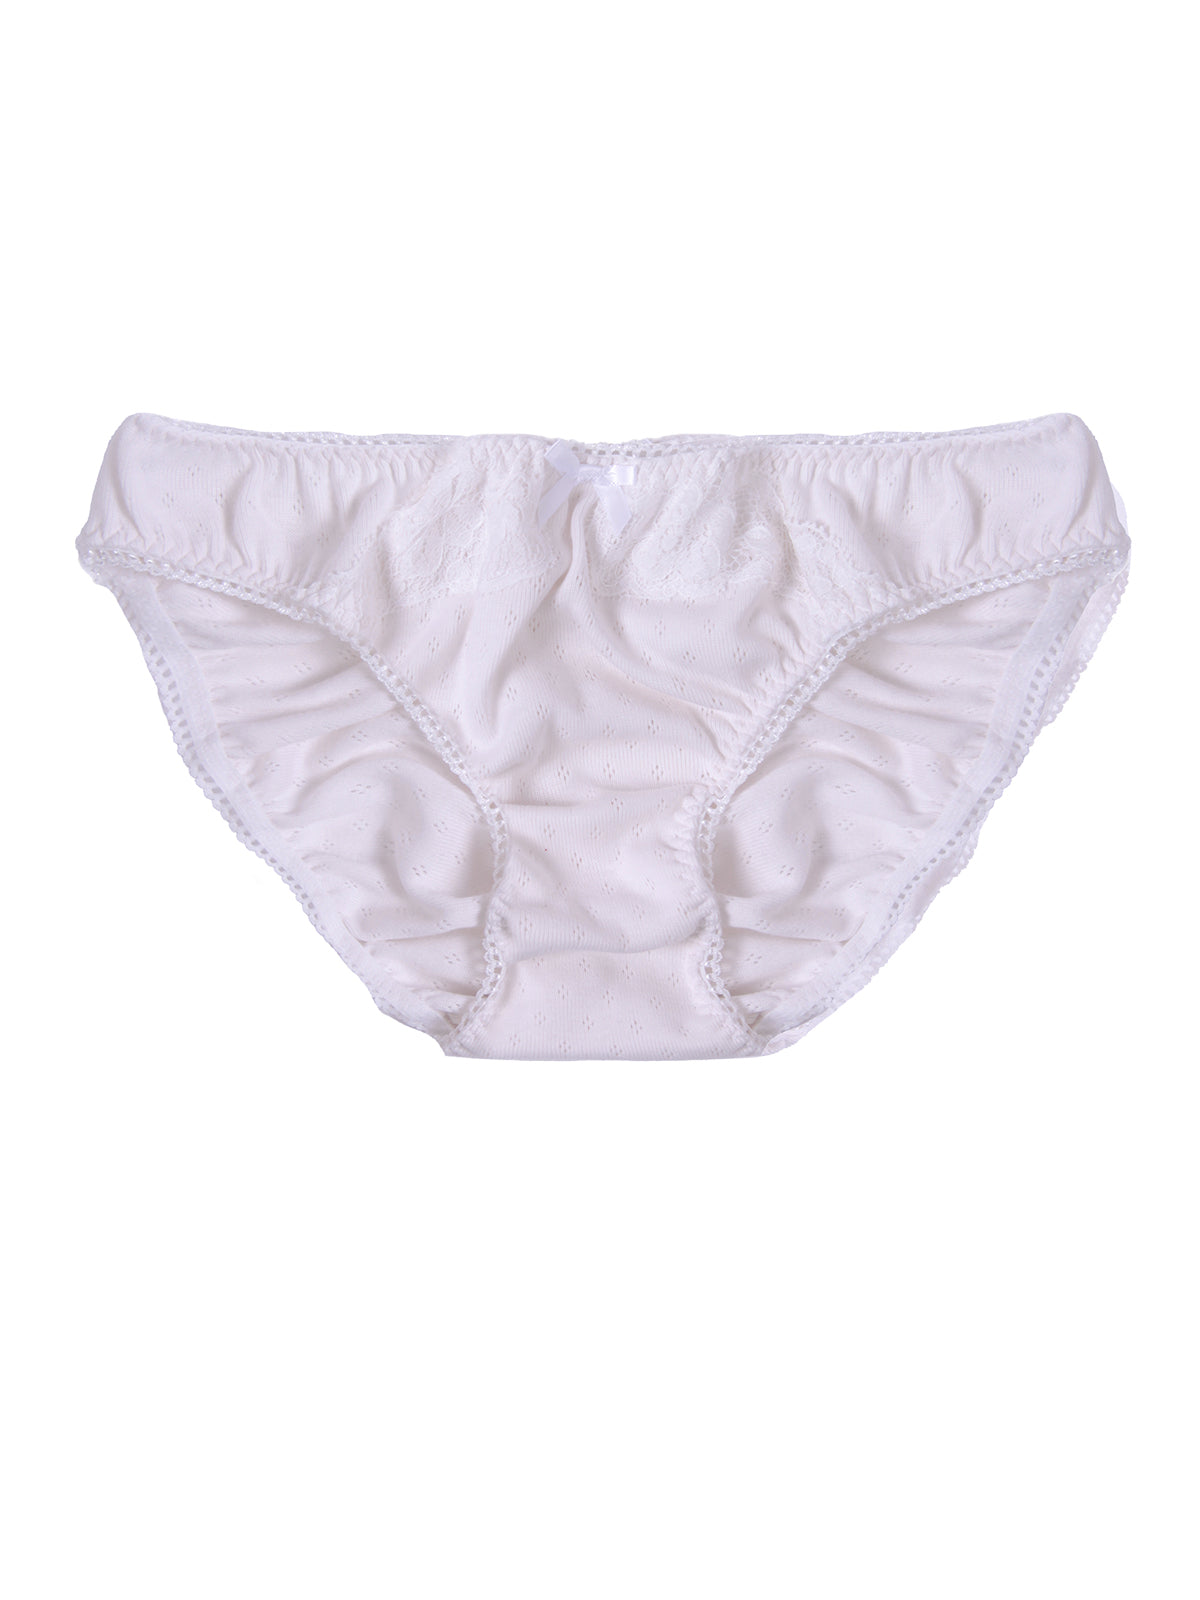 Eva Ivory Organic Cotton Pointelle Jersey Knicker by Ayten Gasson